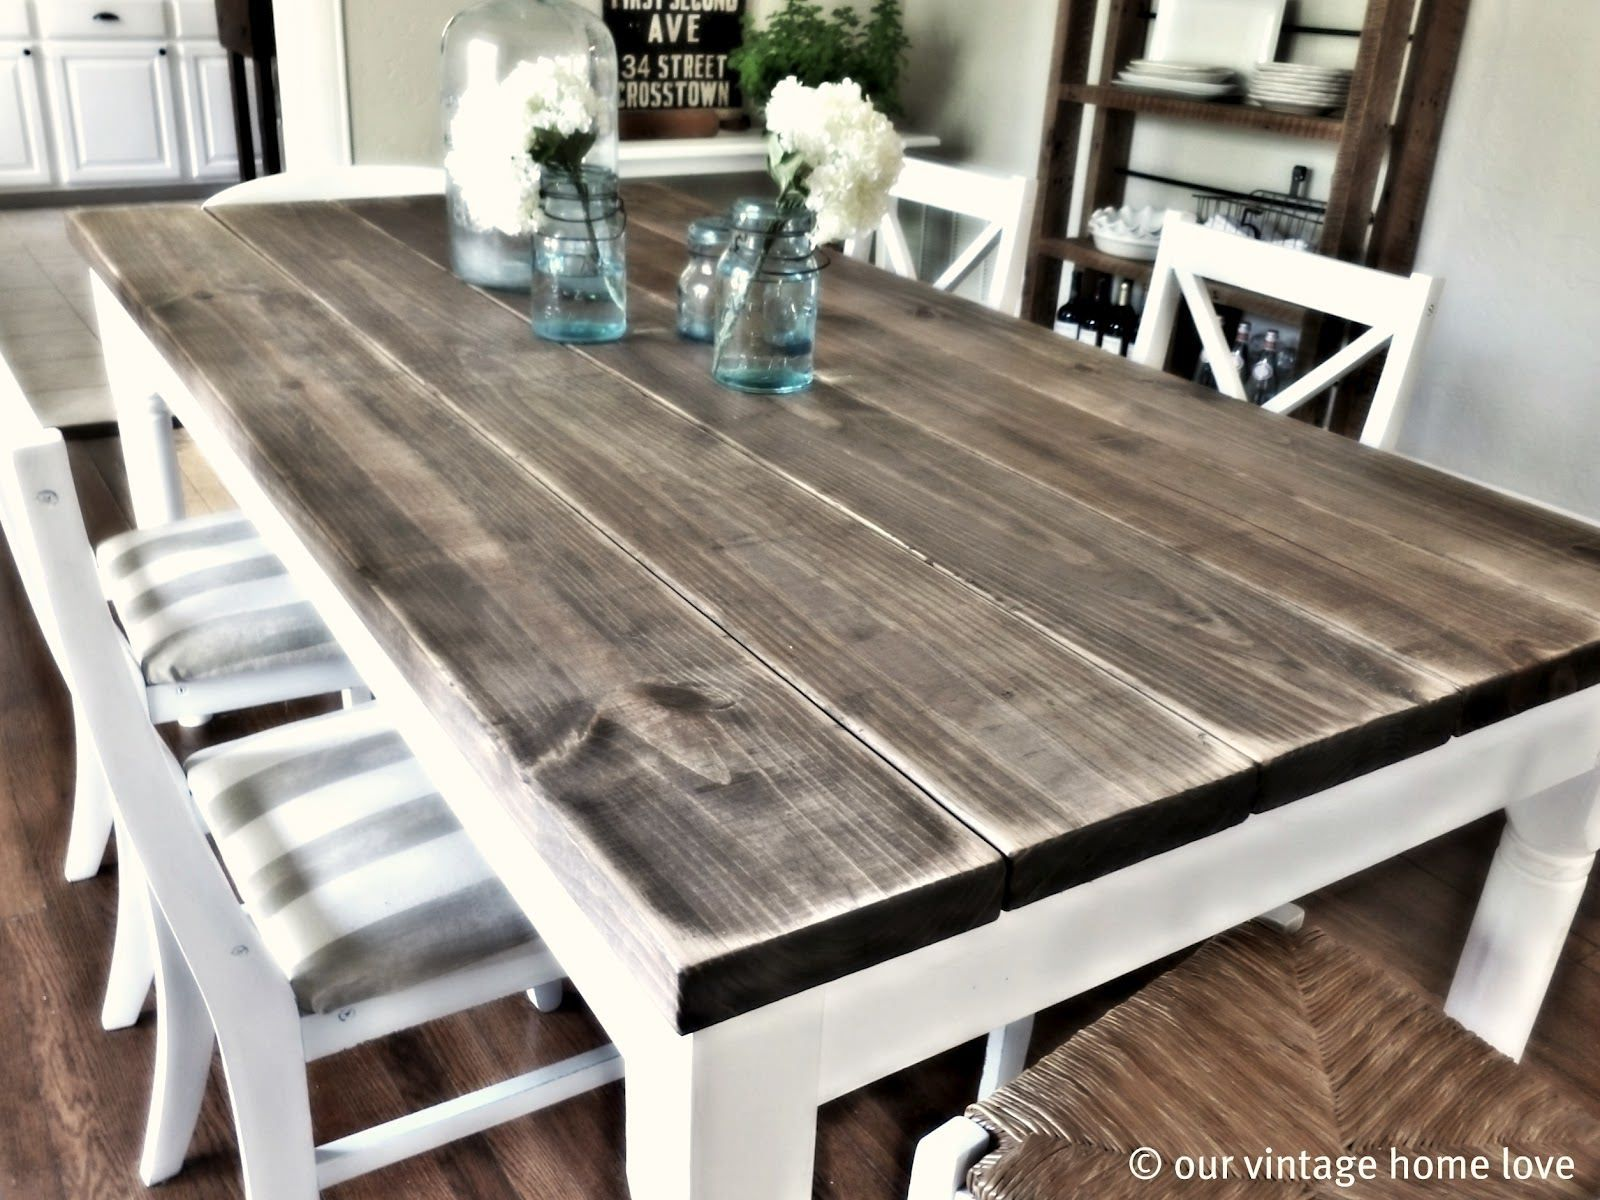 white wash table make kitchen table 5 of them each 8 feet long to make a 6 foot long 3 foot deep table top They were each total cost was bucks Round corners for top